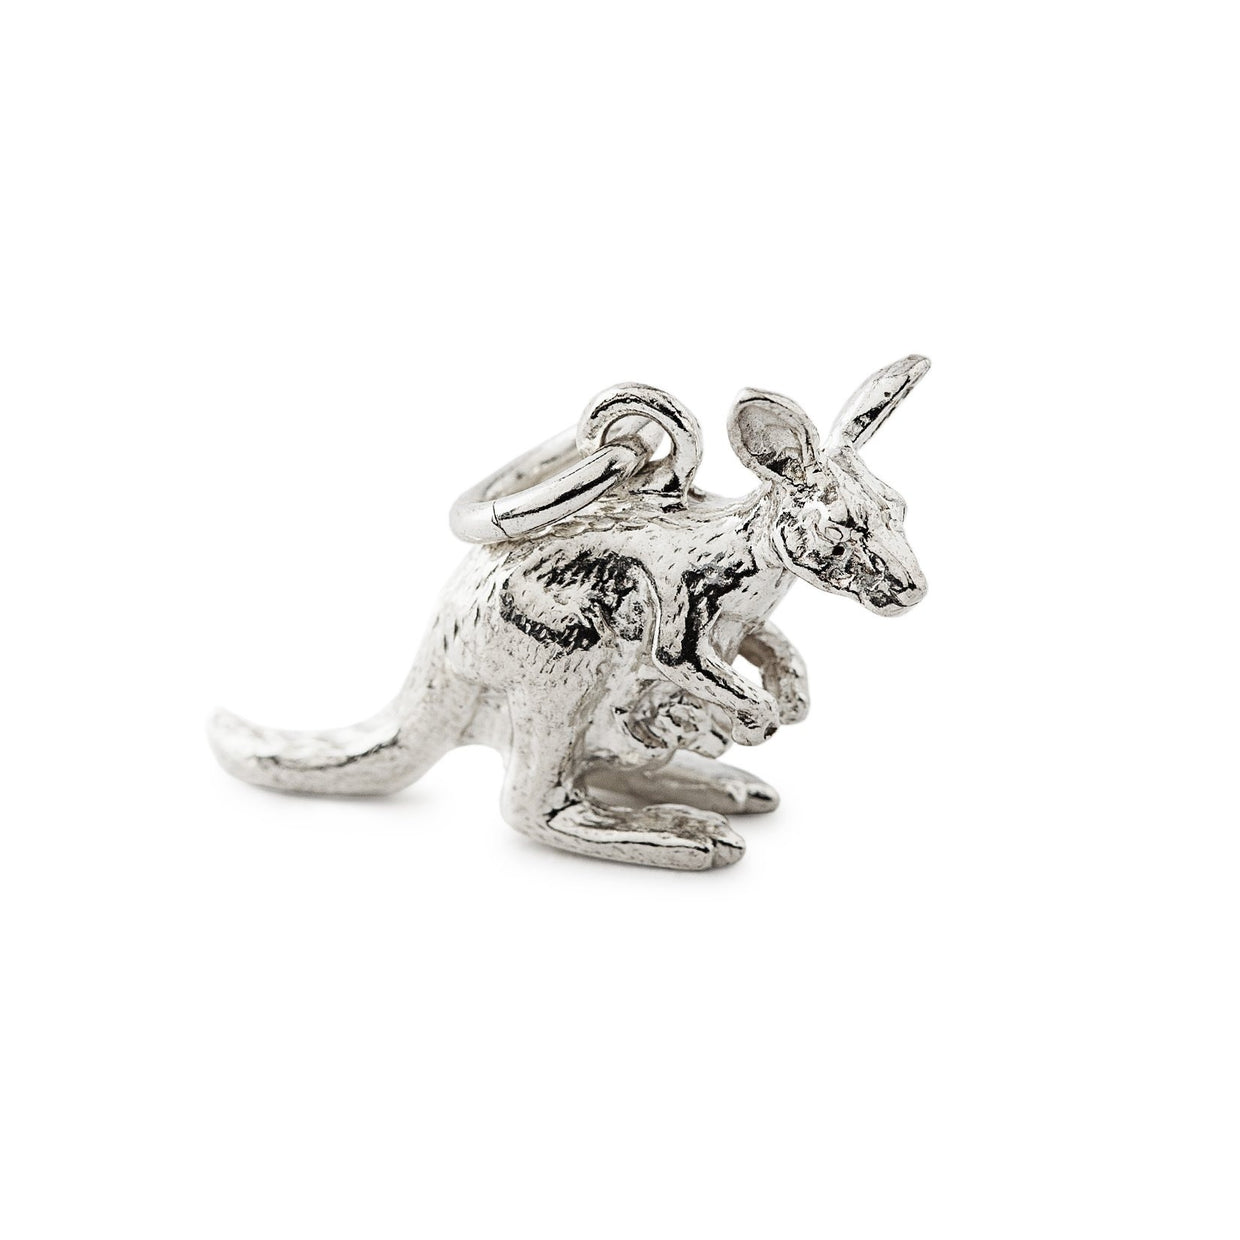 Kangaroo Charm in Sterling Silver - Hamilton & Inches